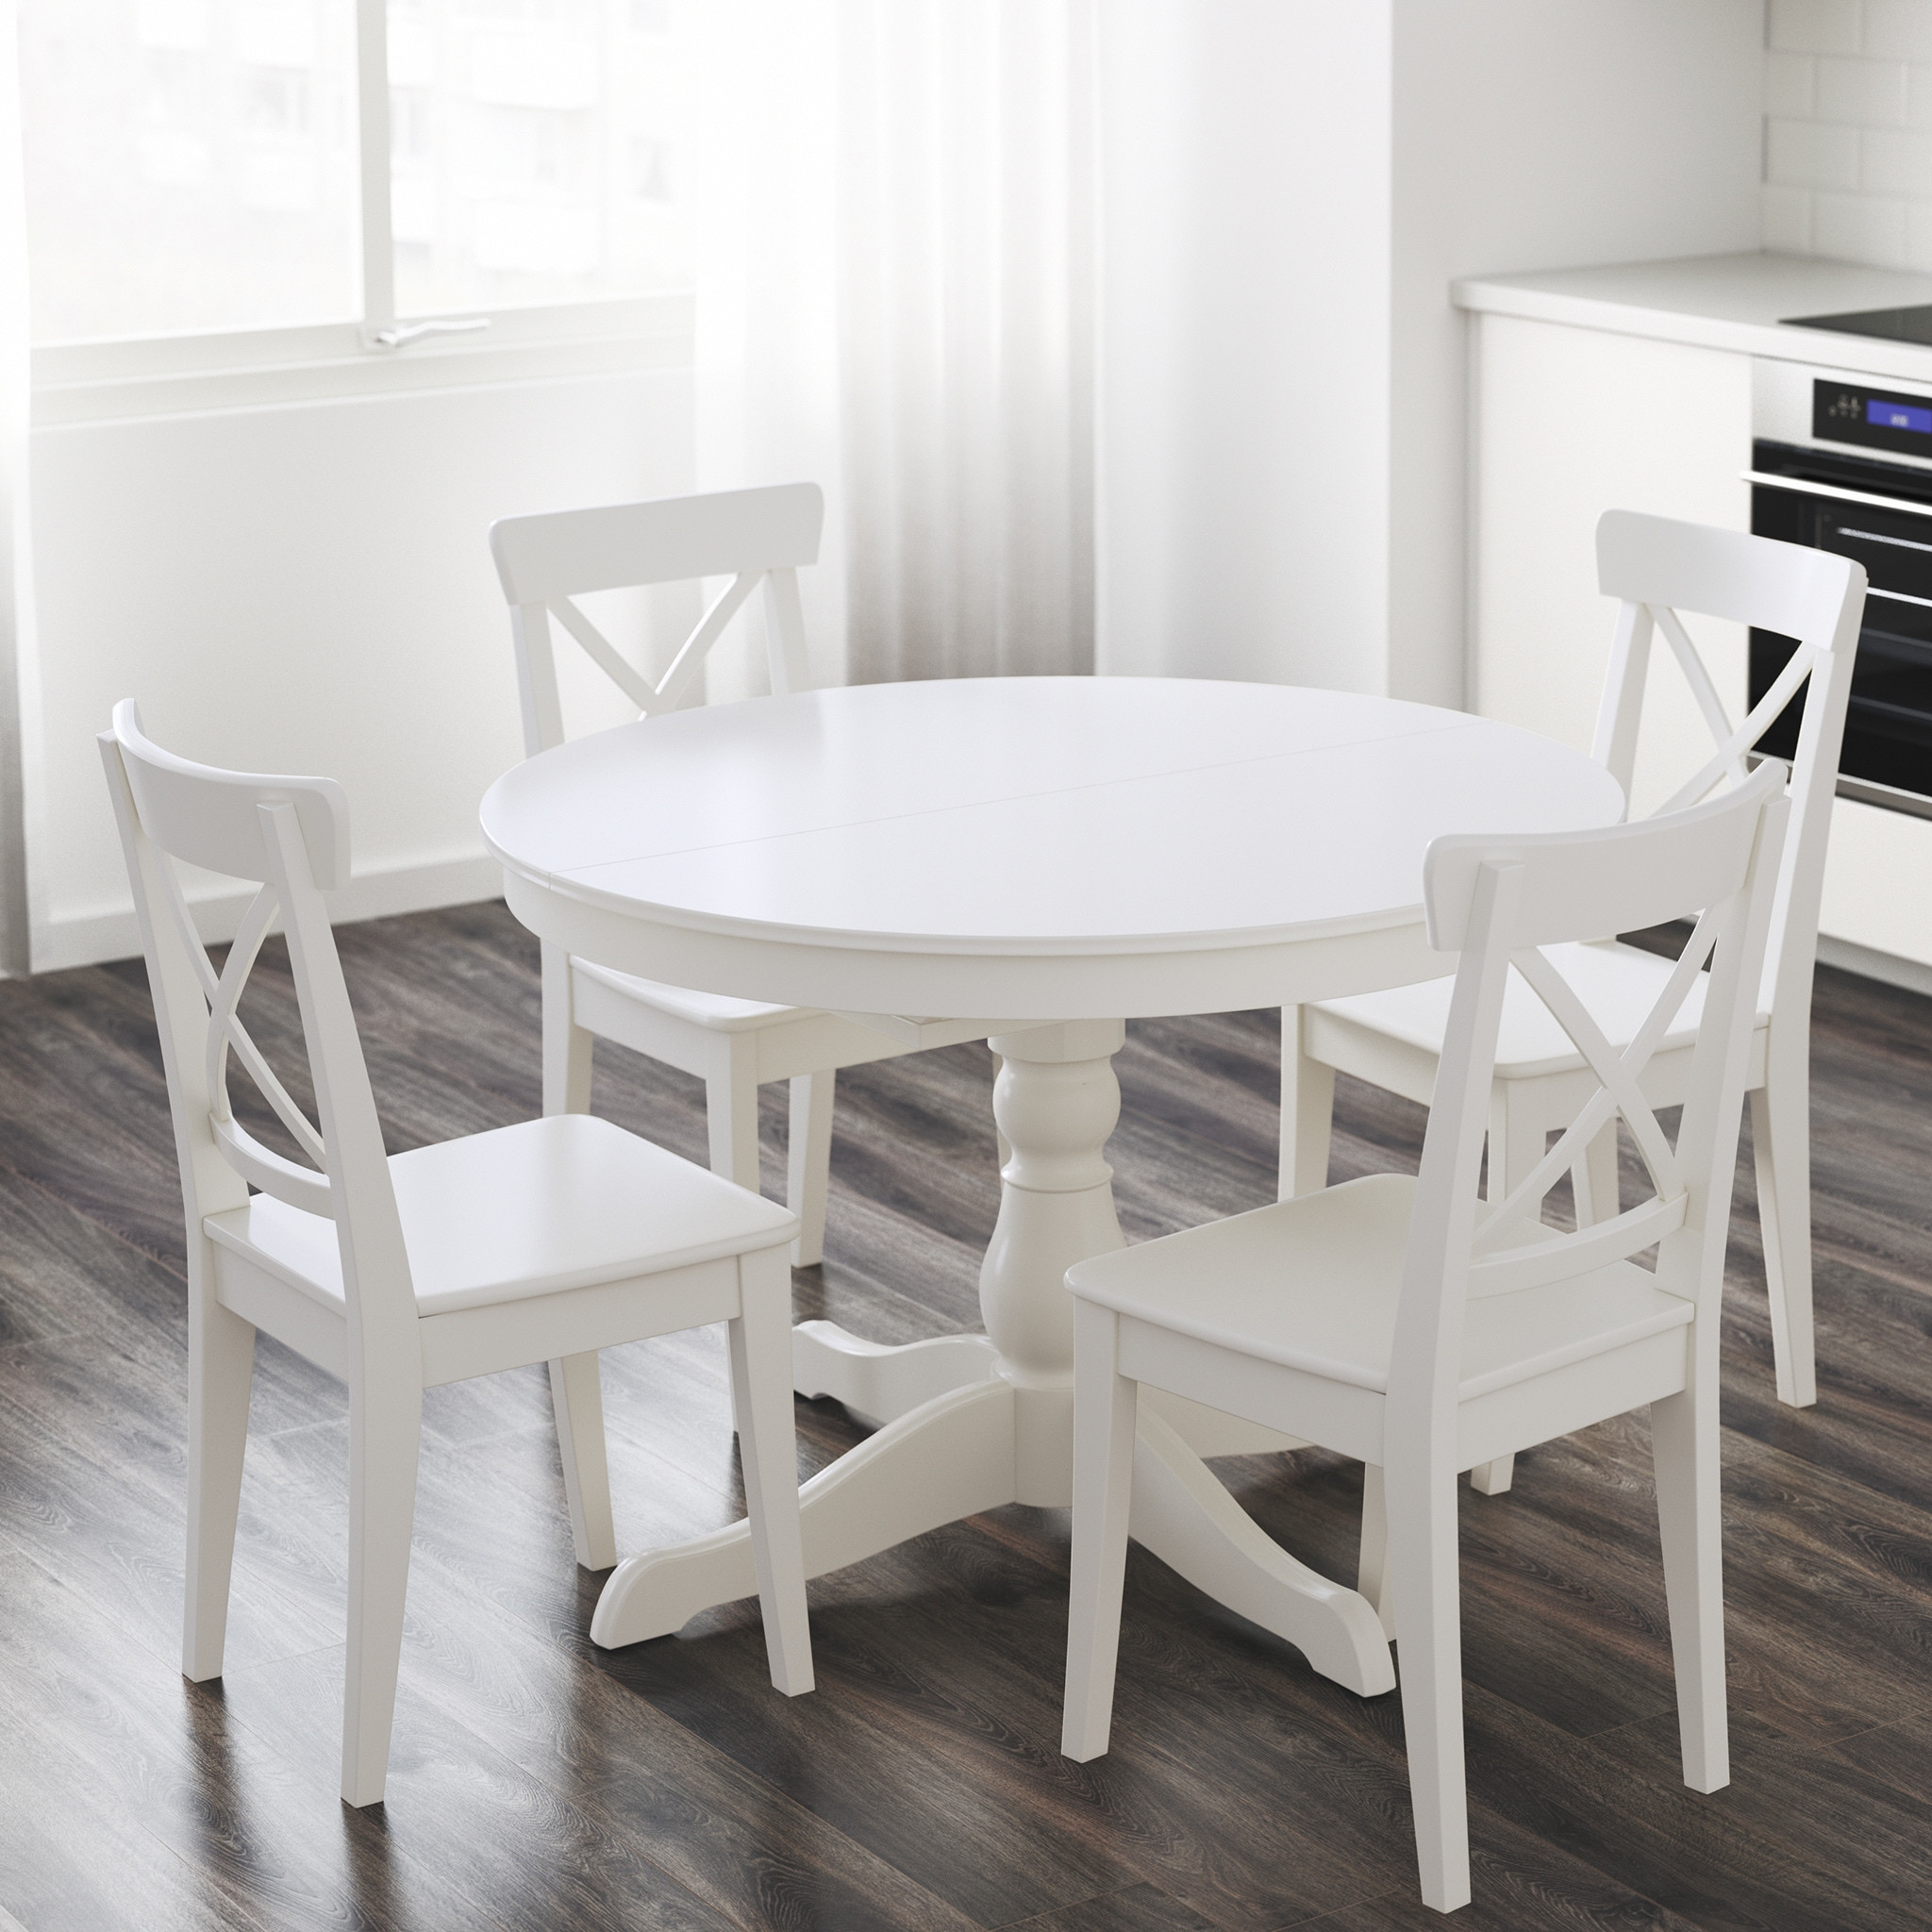 Best ideas about Dining Room Tables . Save or Pin Dining Tables & Kitchen Tables Dining Room Tables Now.